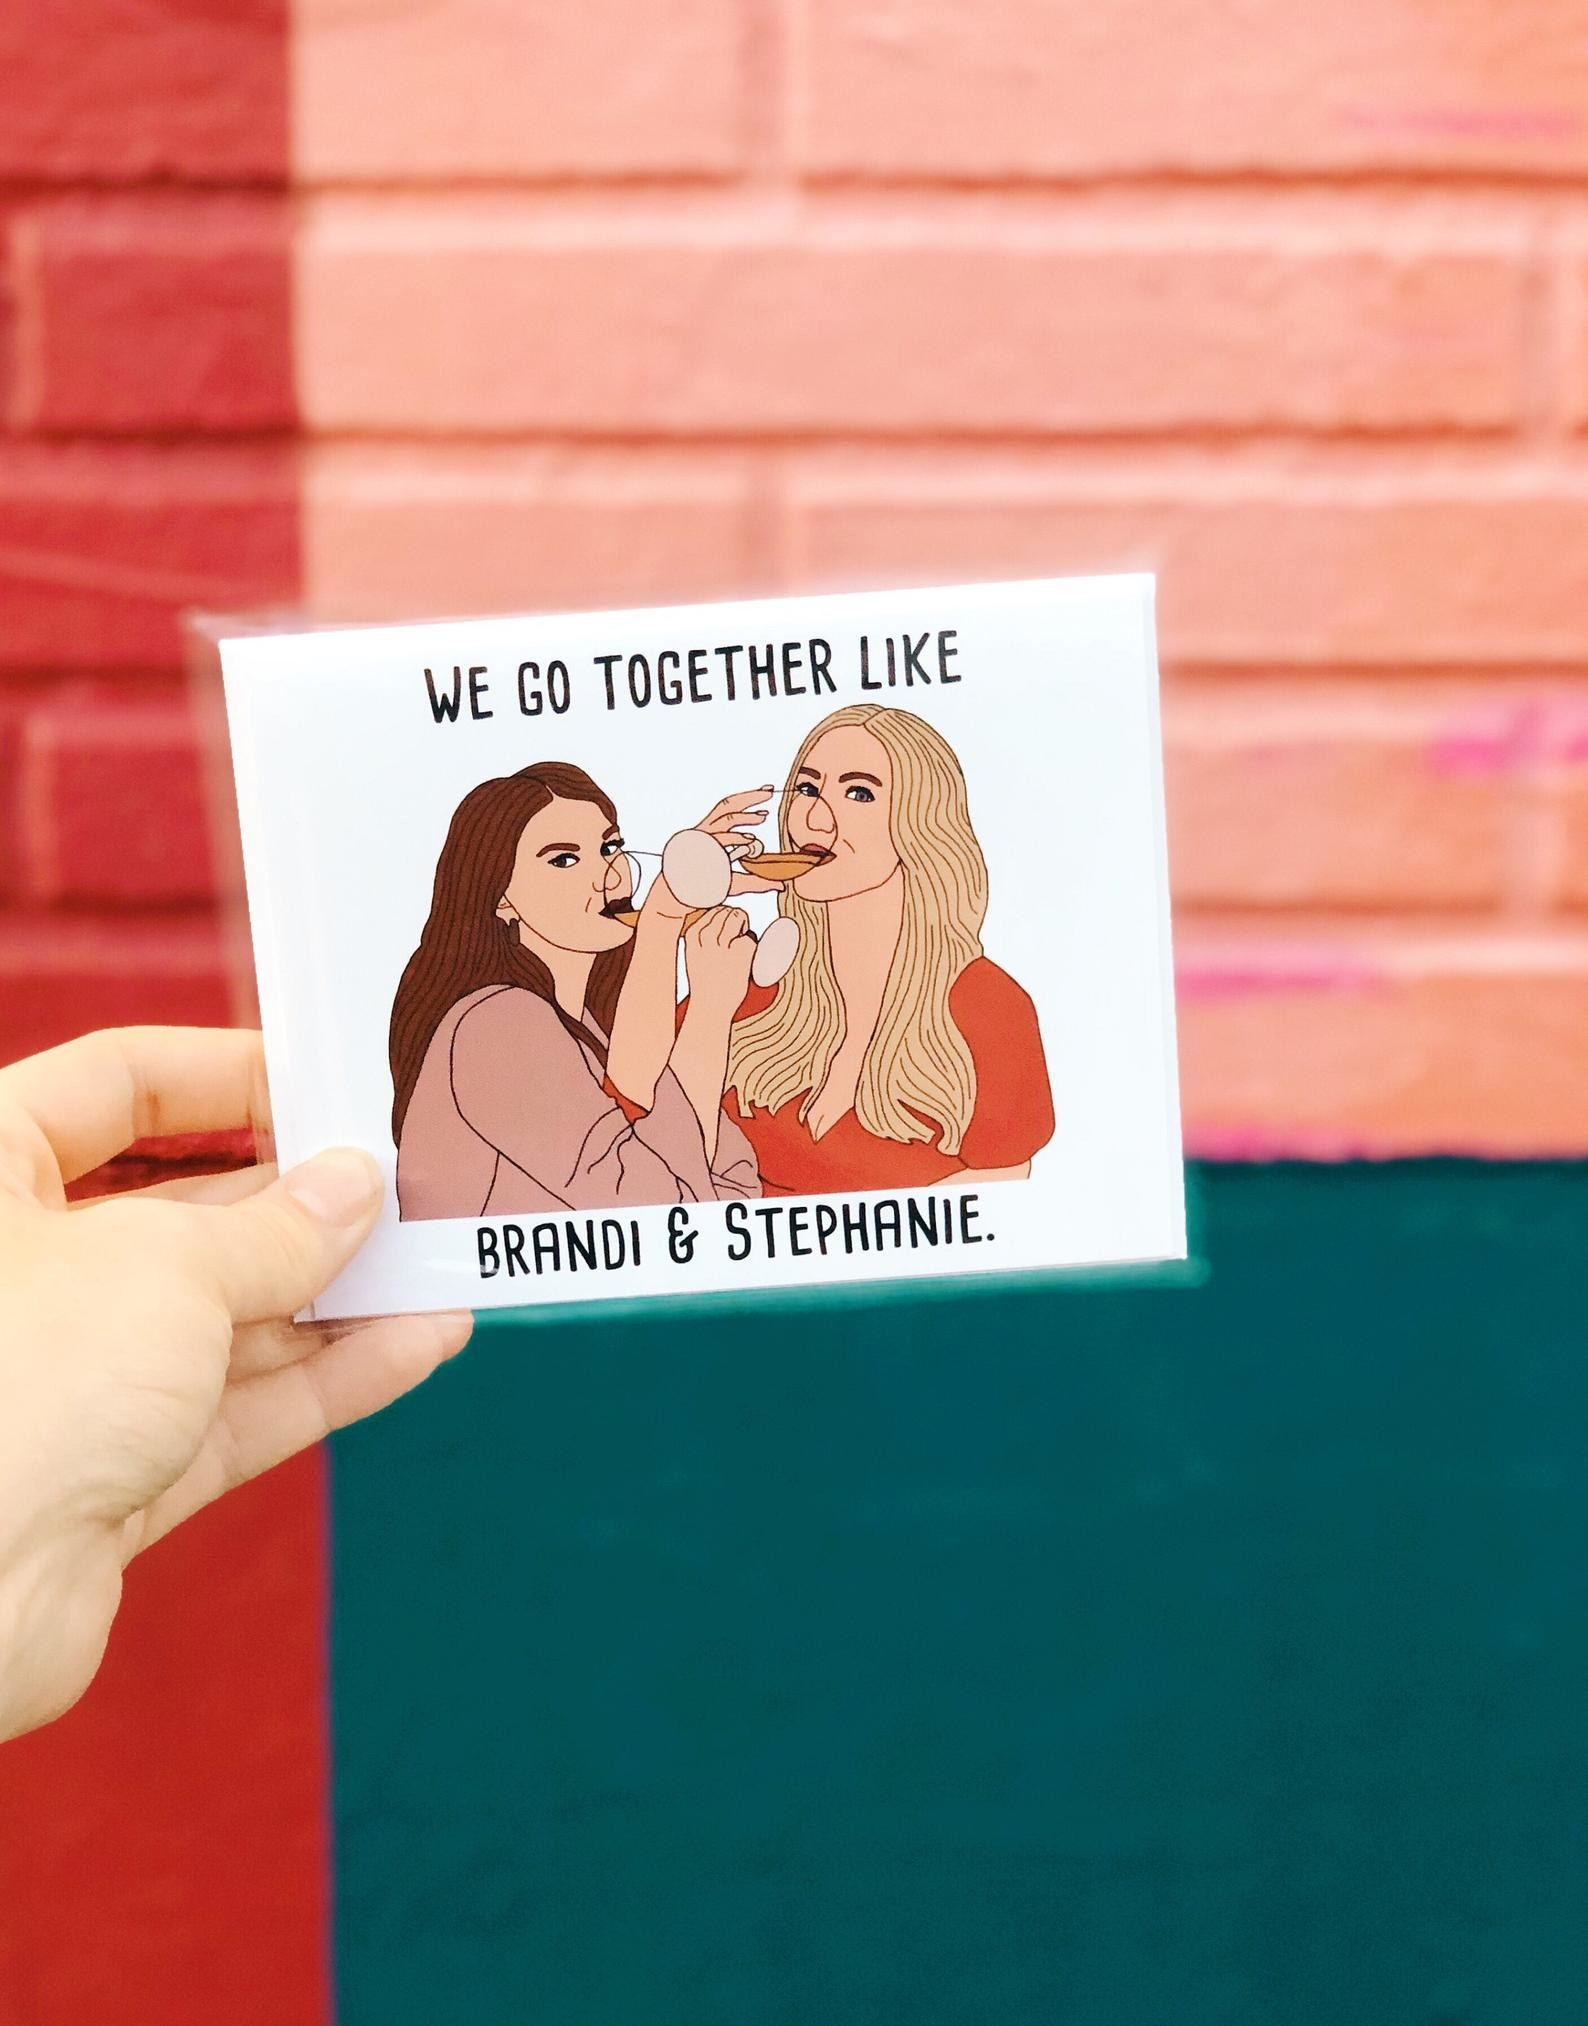 the card showing brandi and stephanie drinking wine together